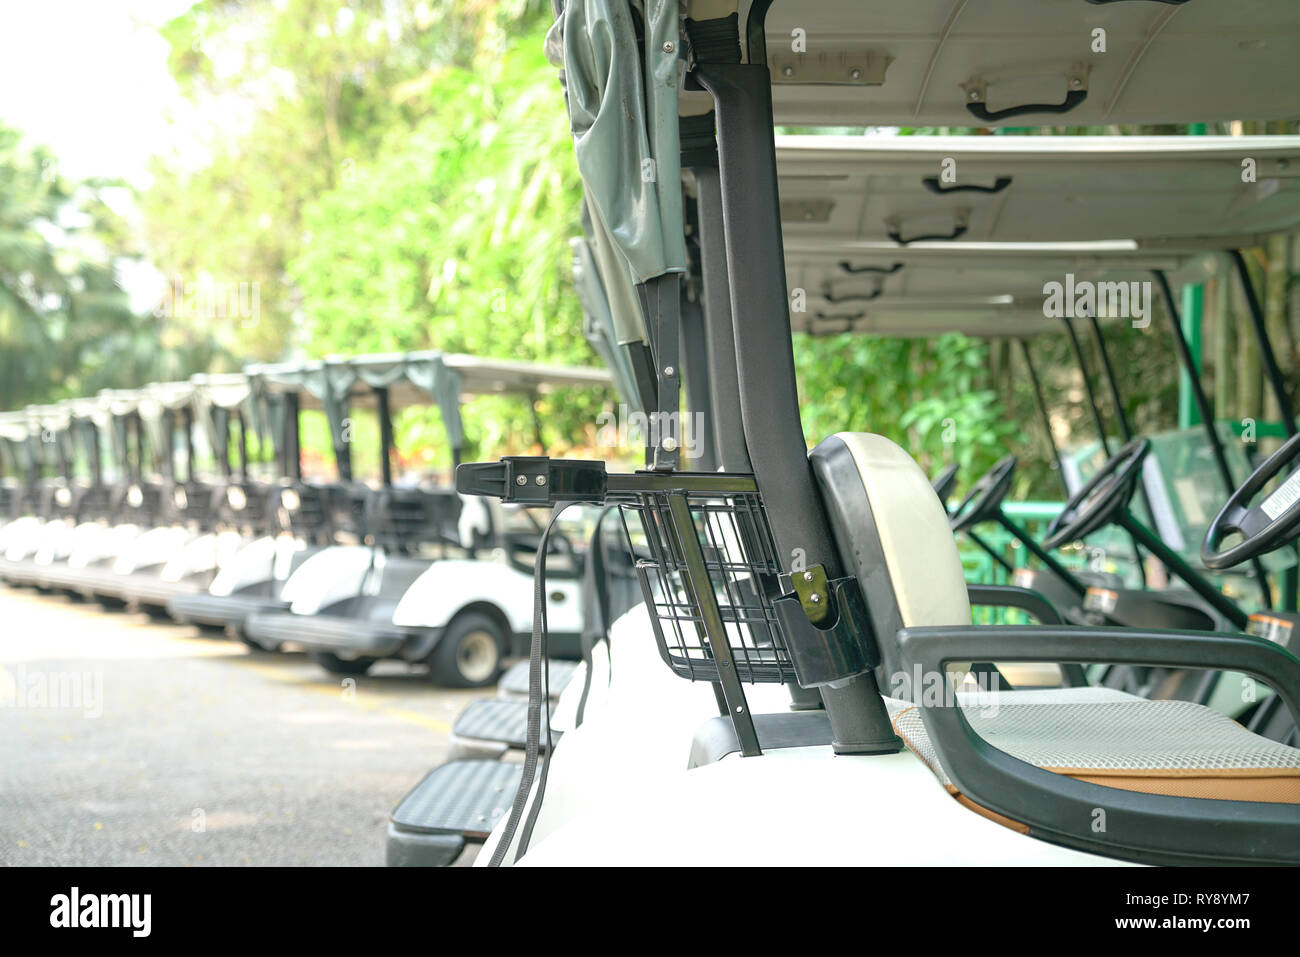 Recreation or transport concept : Golf carts parked outside a golf club - Stock Image